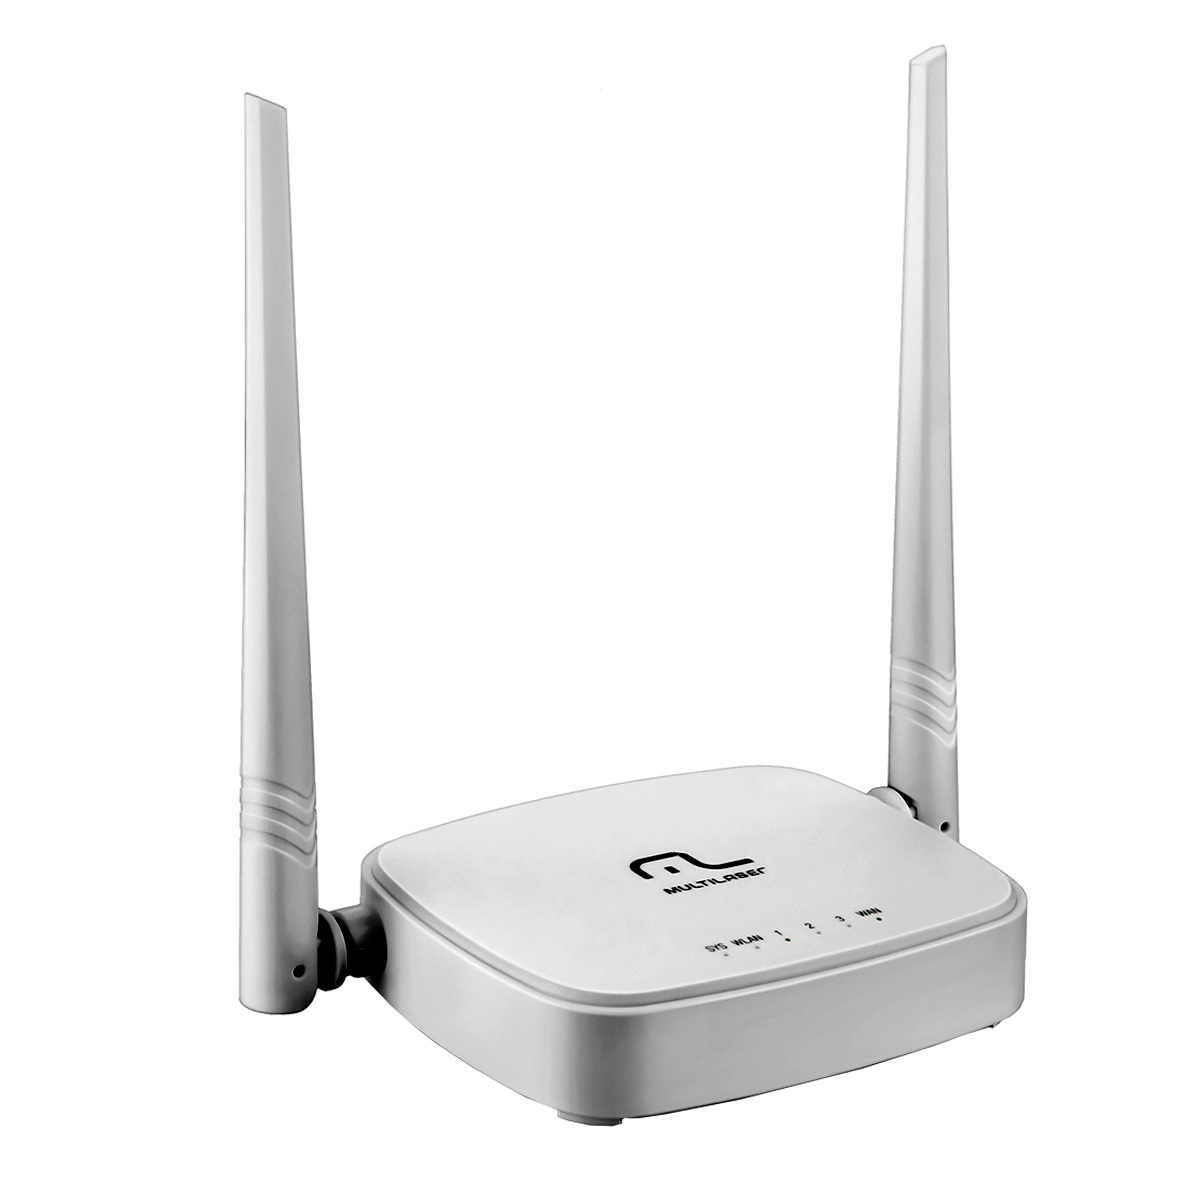 Roteador 300Mbps WiFi - Re 160 Multilaser